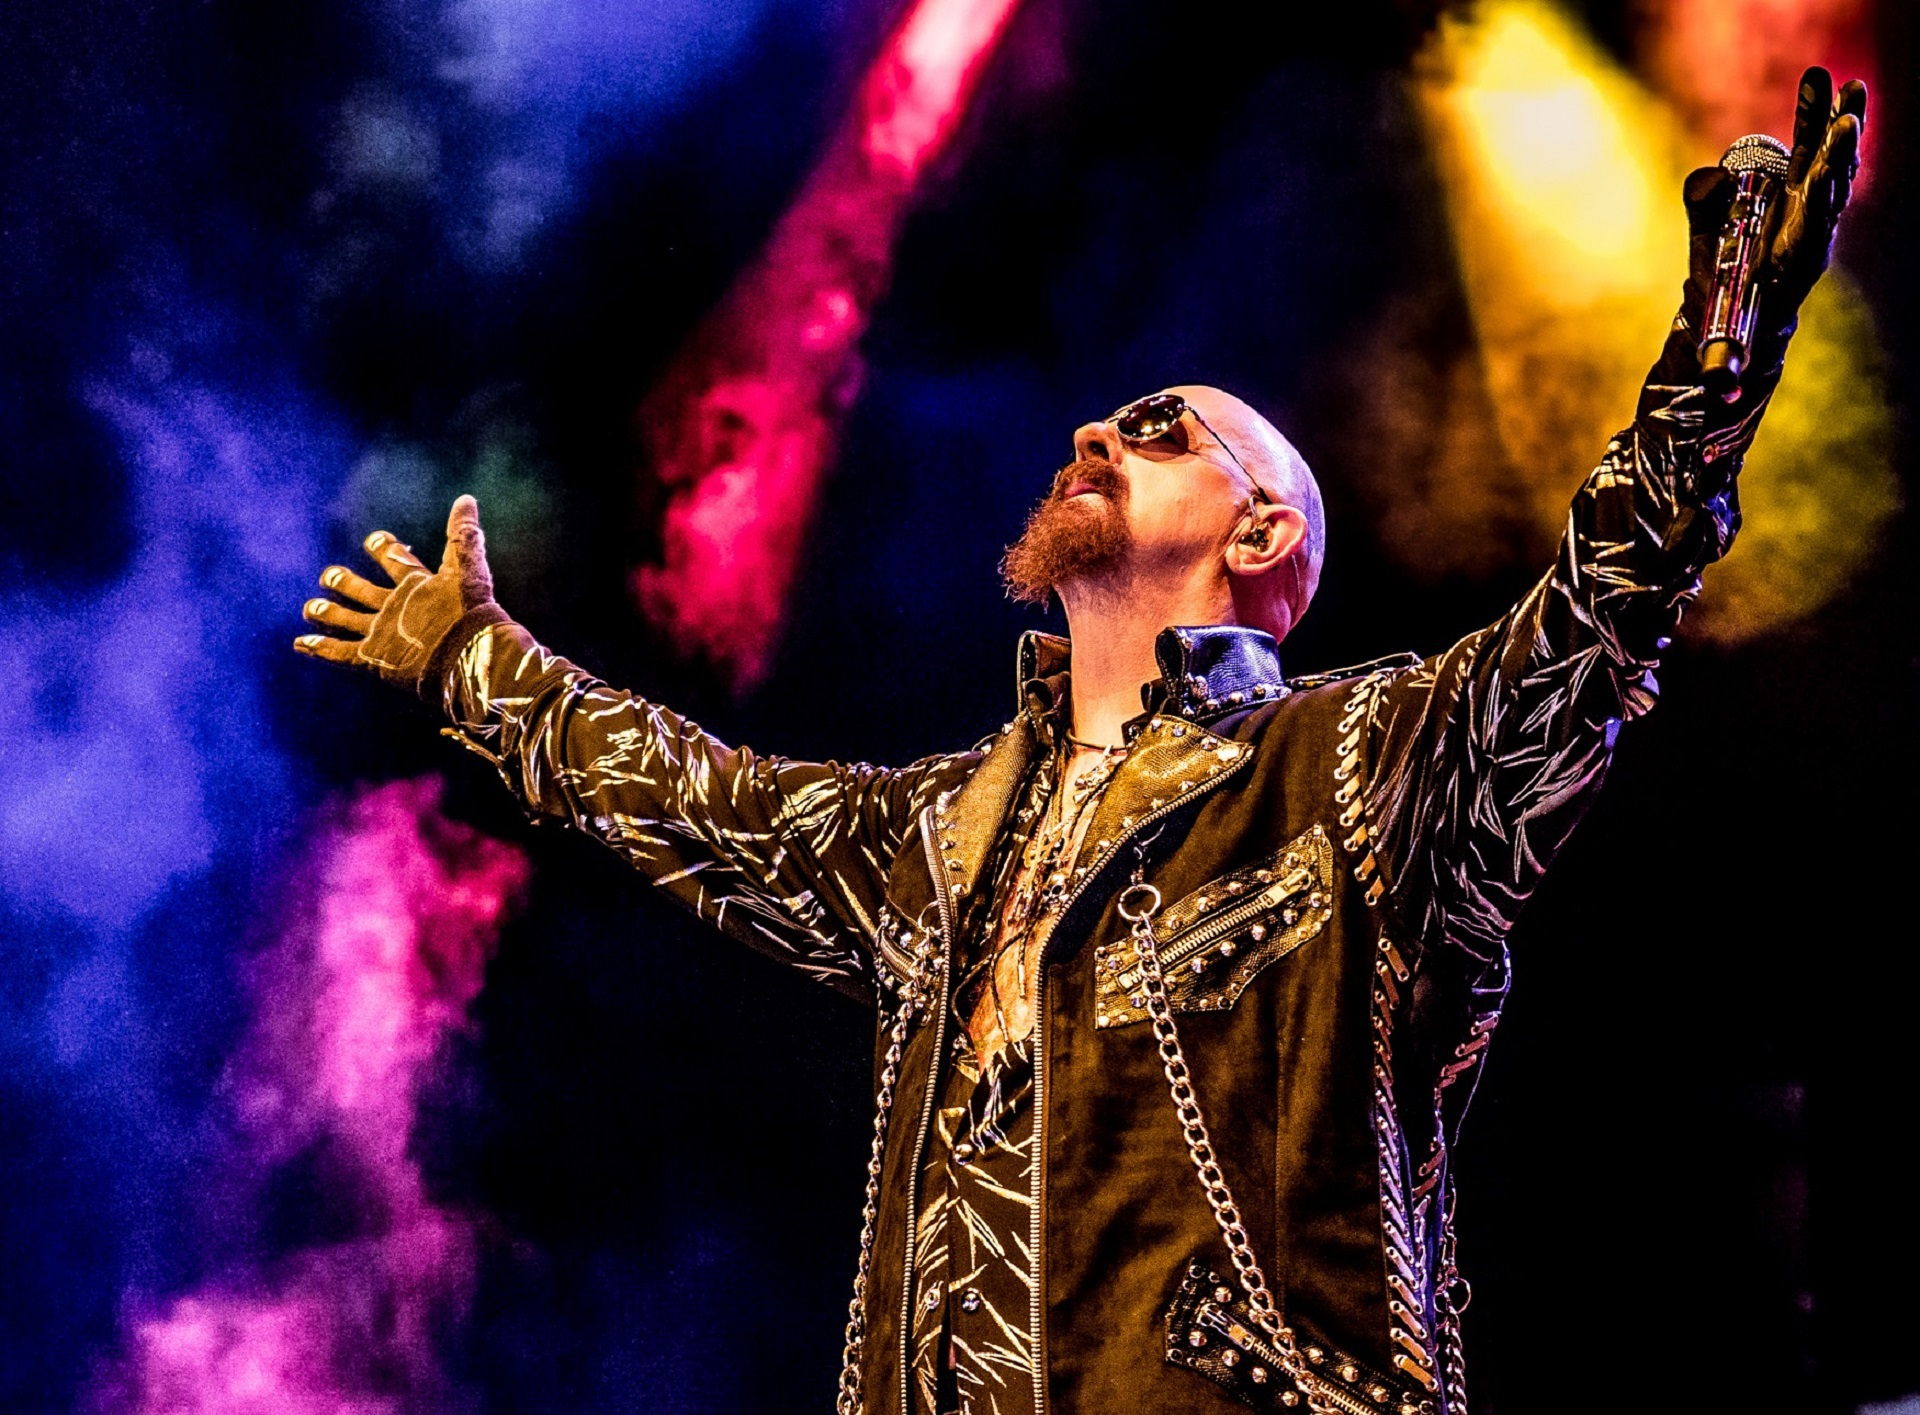 Judas Priest Desktop Wallpaper